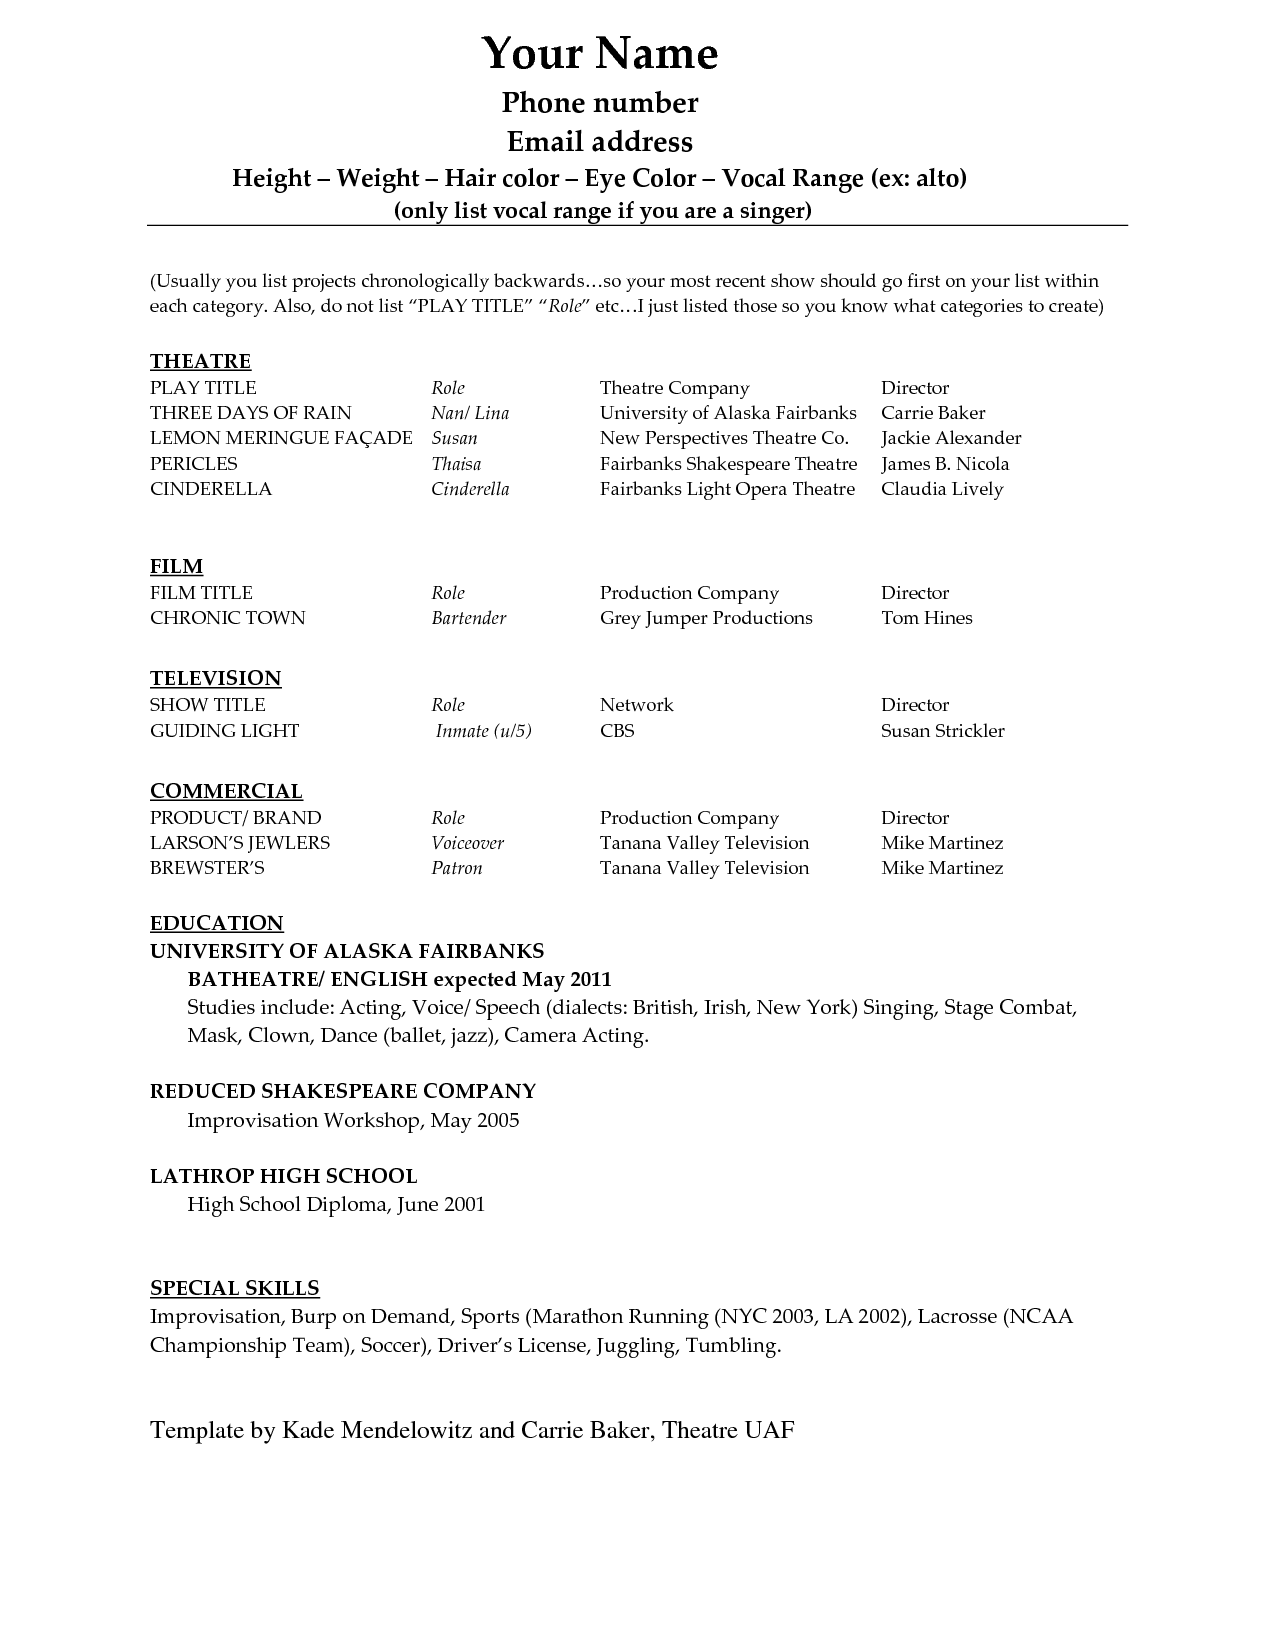 Acting Resume Template Download Free Http Www Resumecareer